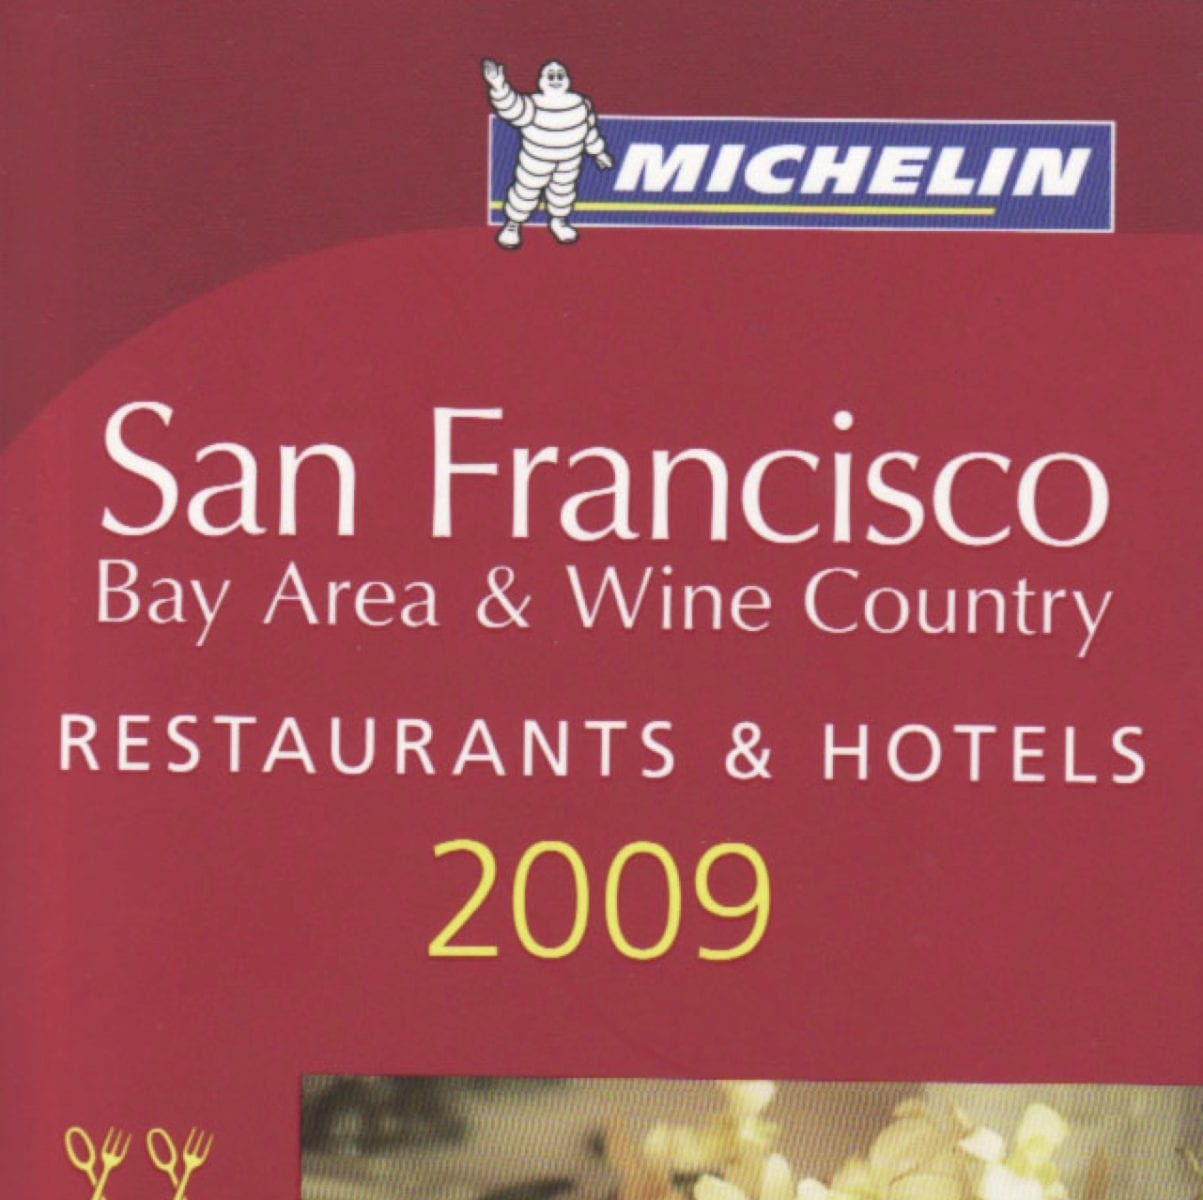 San Francisco 2009 Michelin Guide cover.